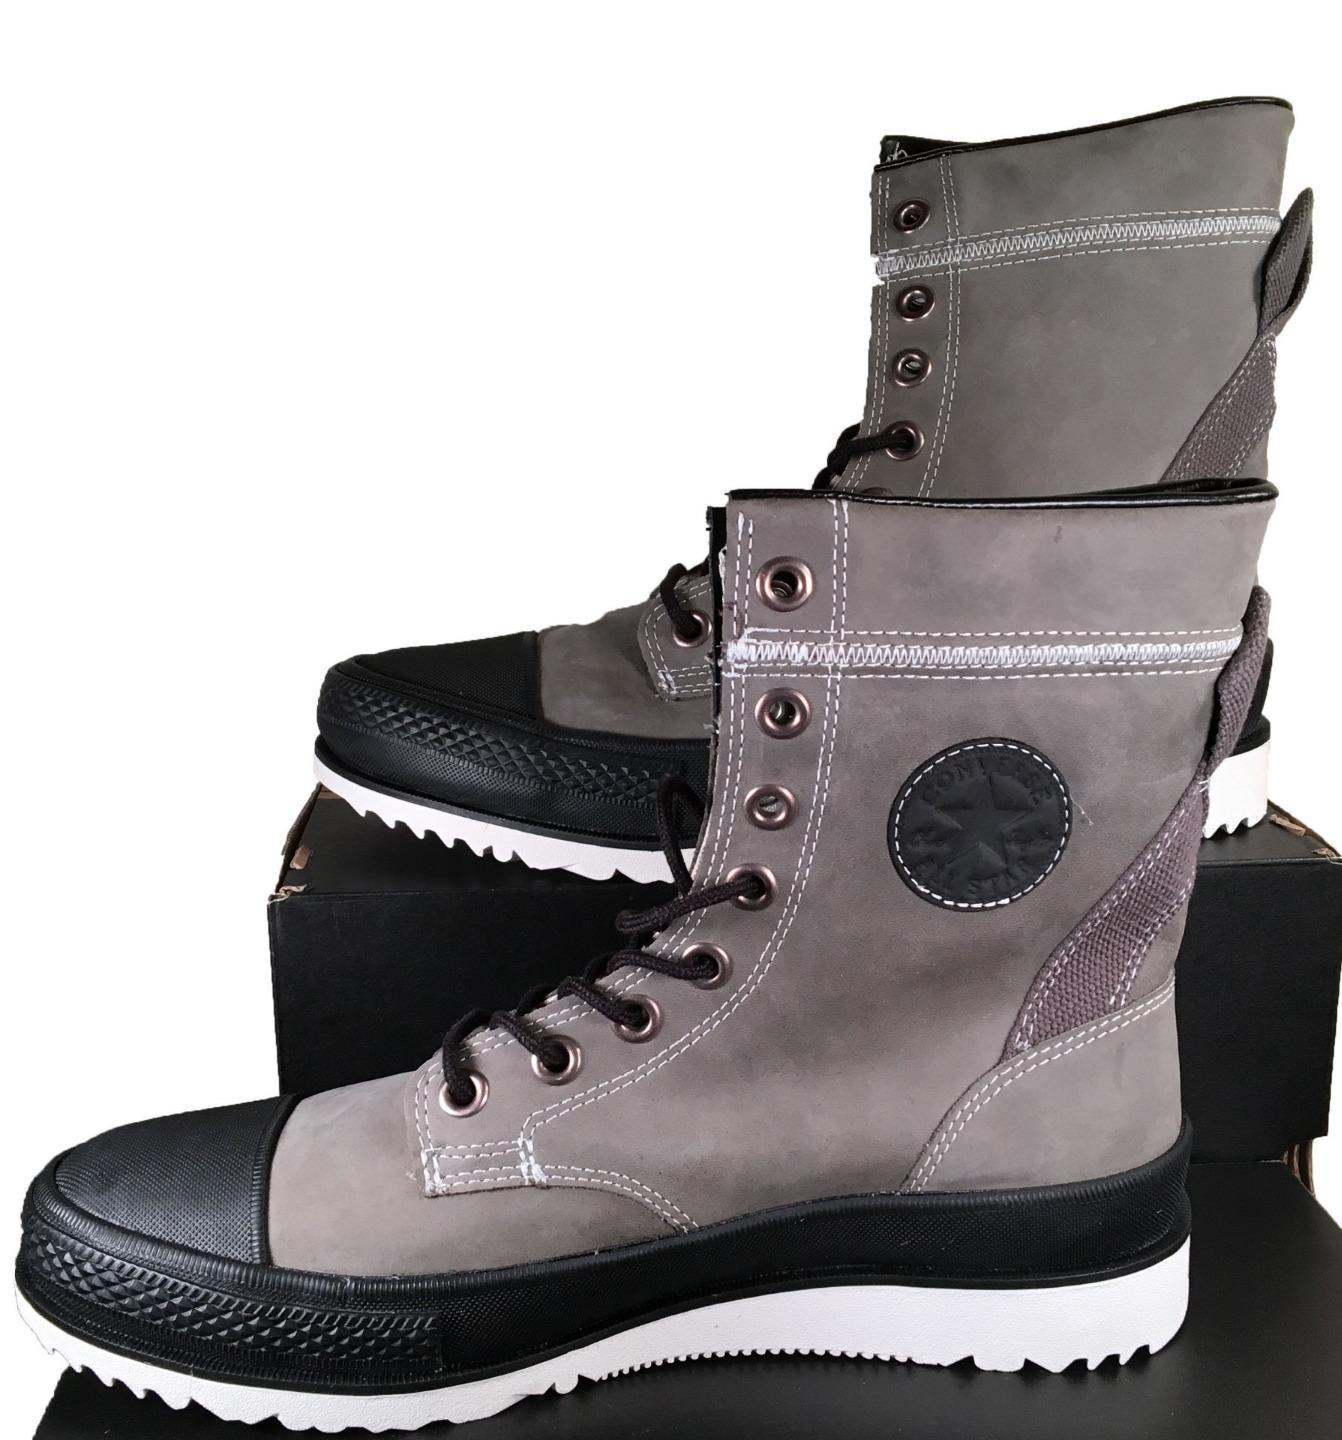 8c5c9a695b9e Converse Chuck Taylor Major Mills XHI Hi Top Leather Boot Charcoal Gray  132404C